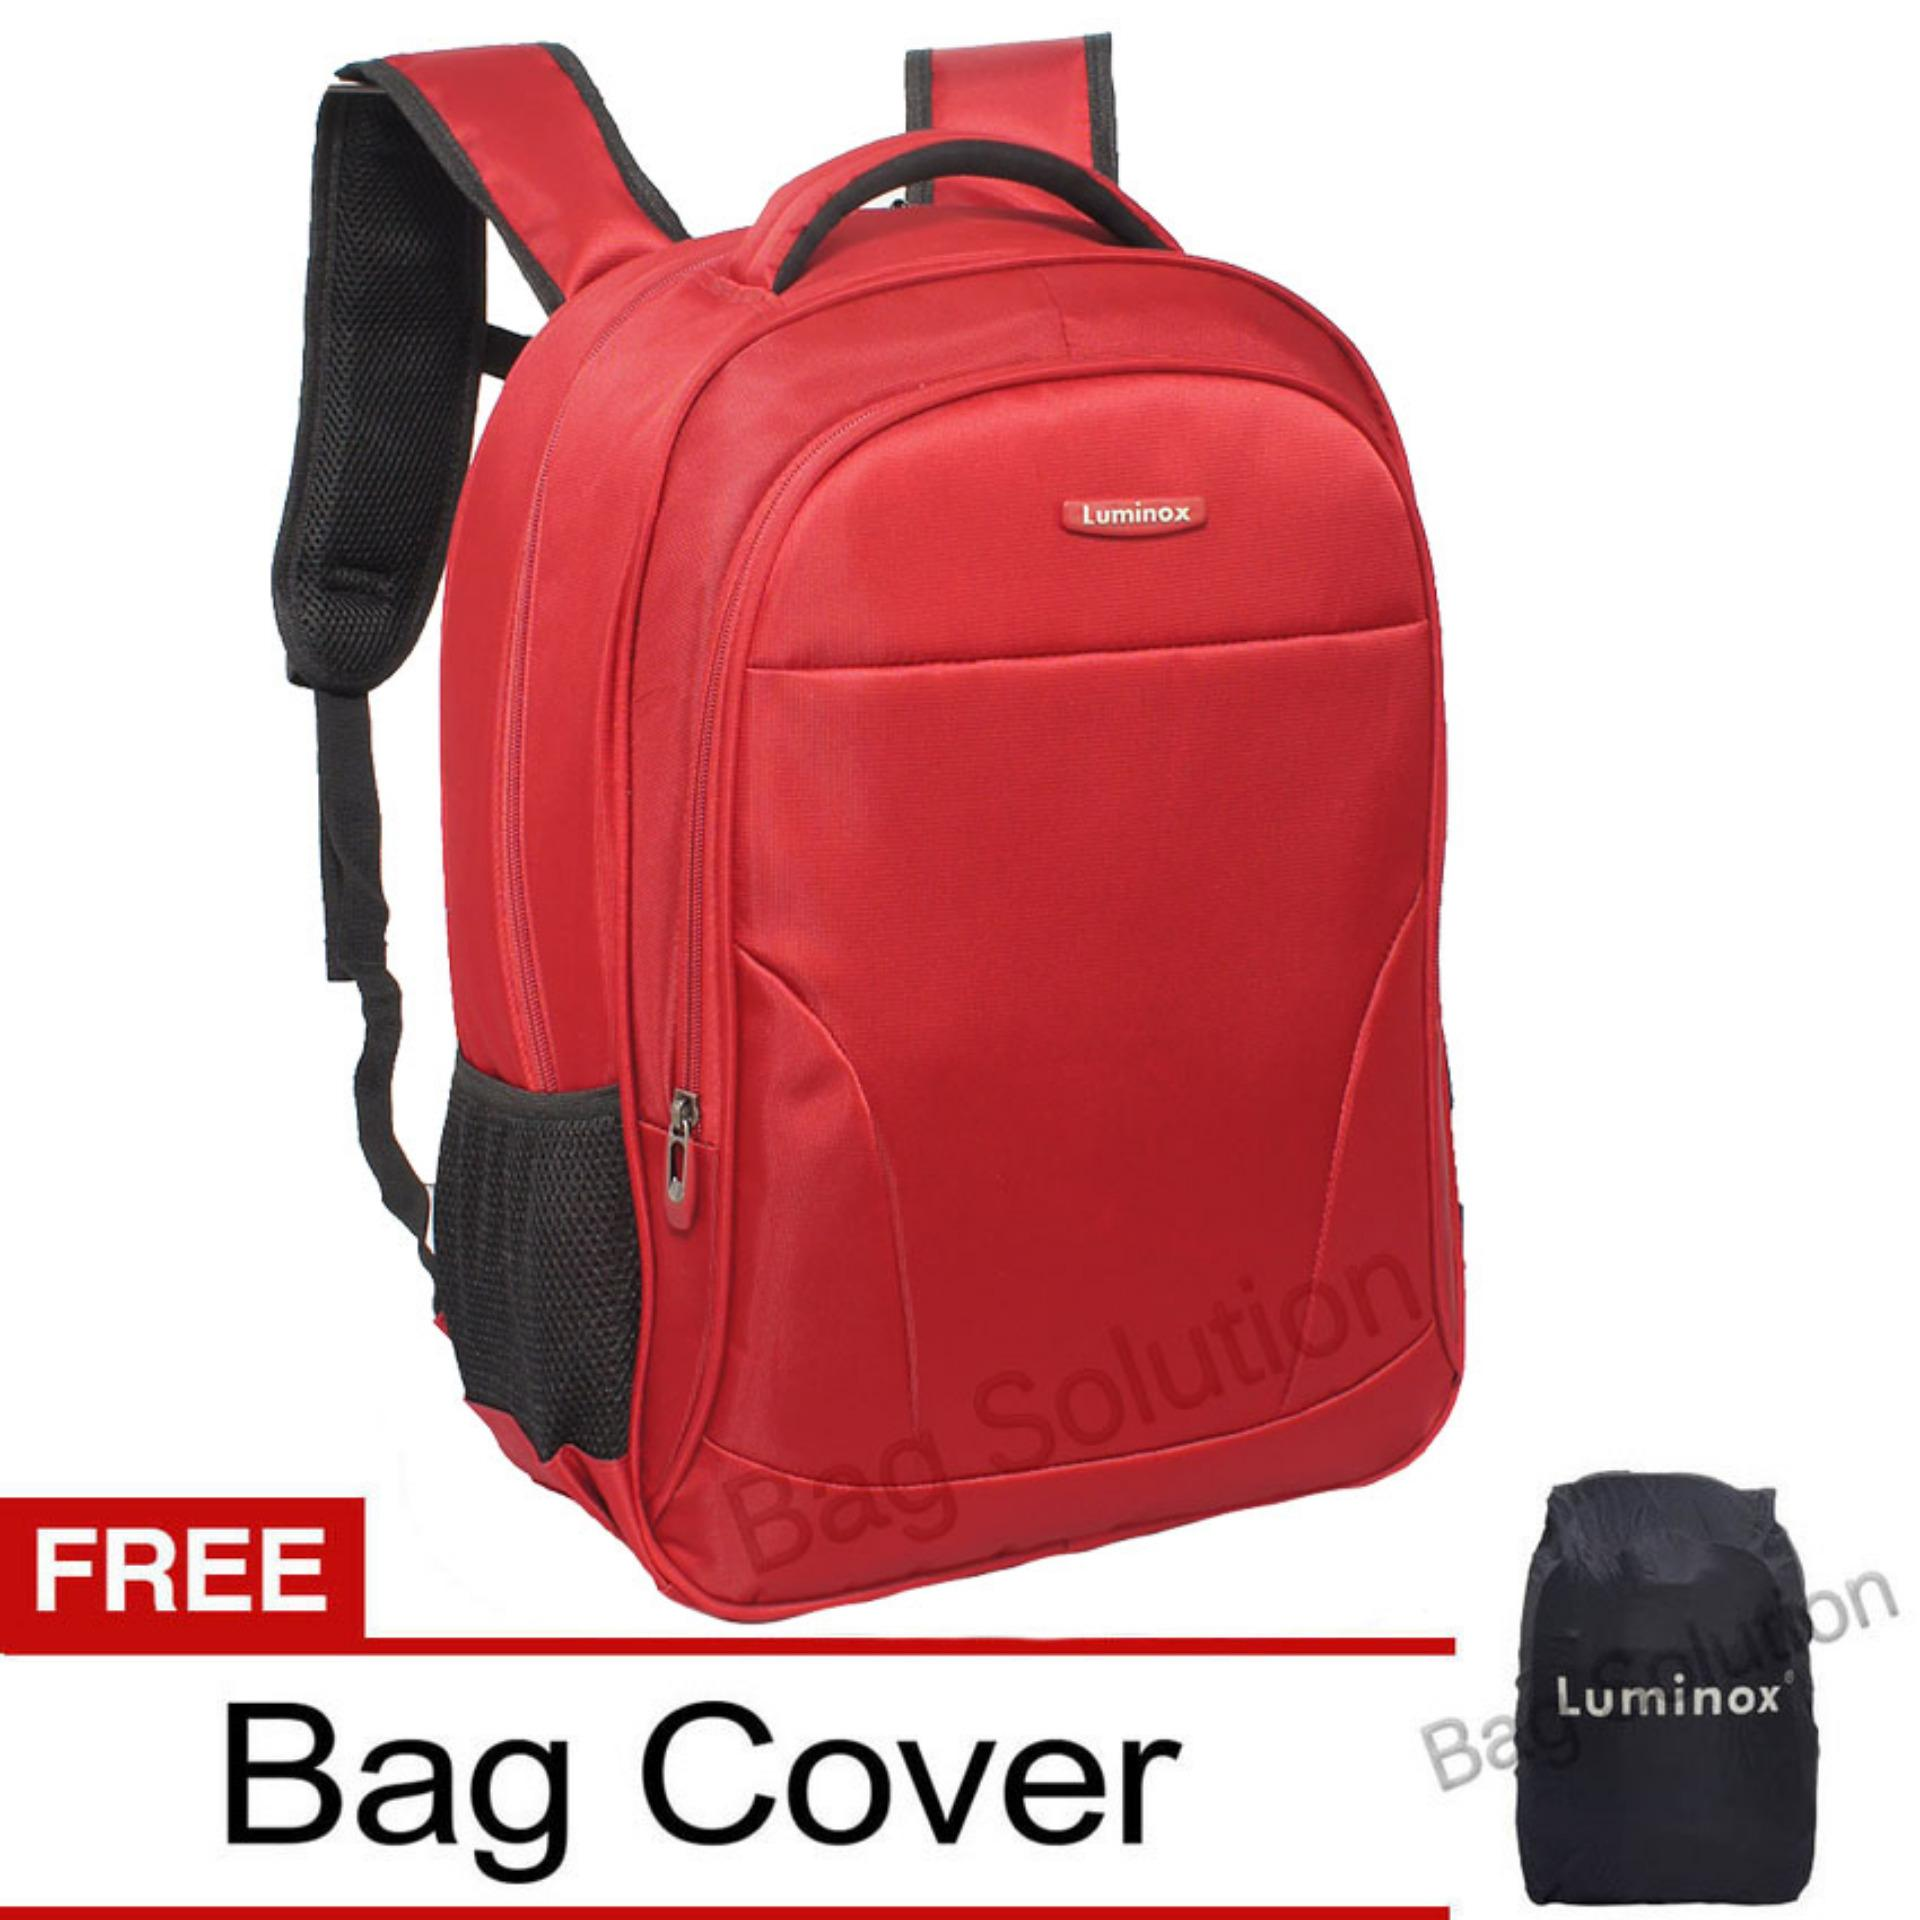 Jual Luminox Tas Ransel Laptop Tahan Air Tas Pria Tas Wanita 7723 Backpack Up To 15 Inch Bonus Bag Cover Merah Luminox